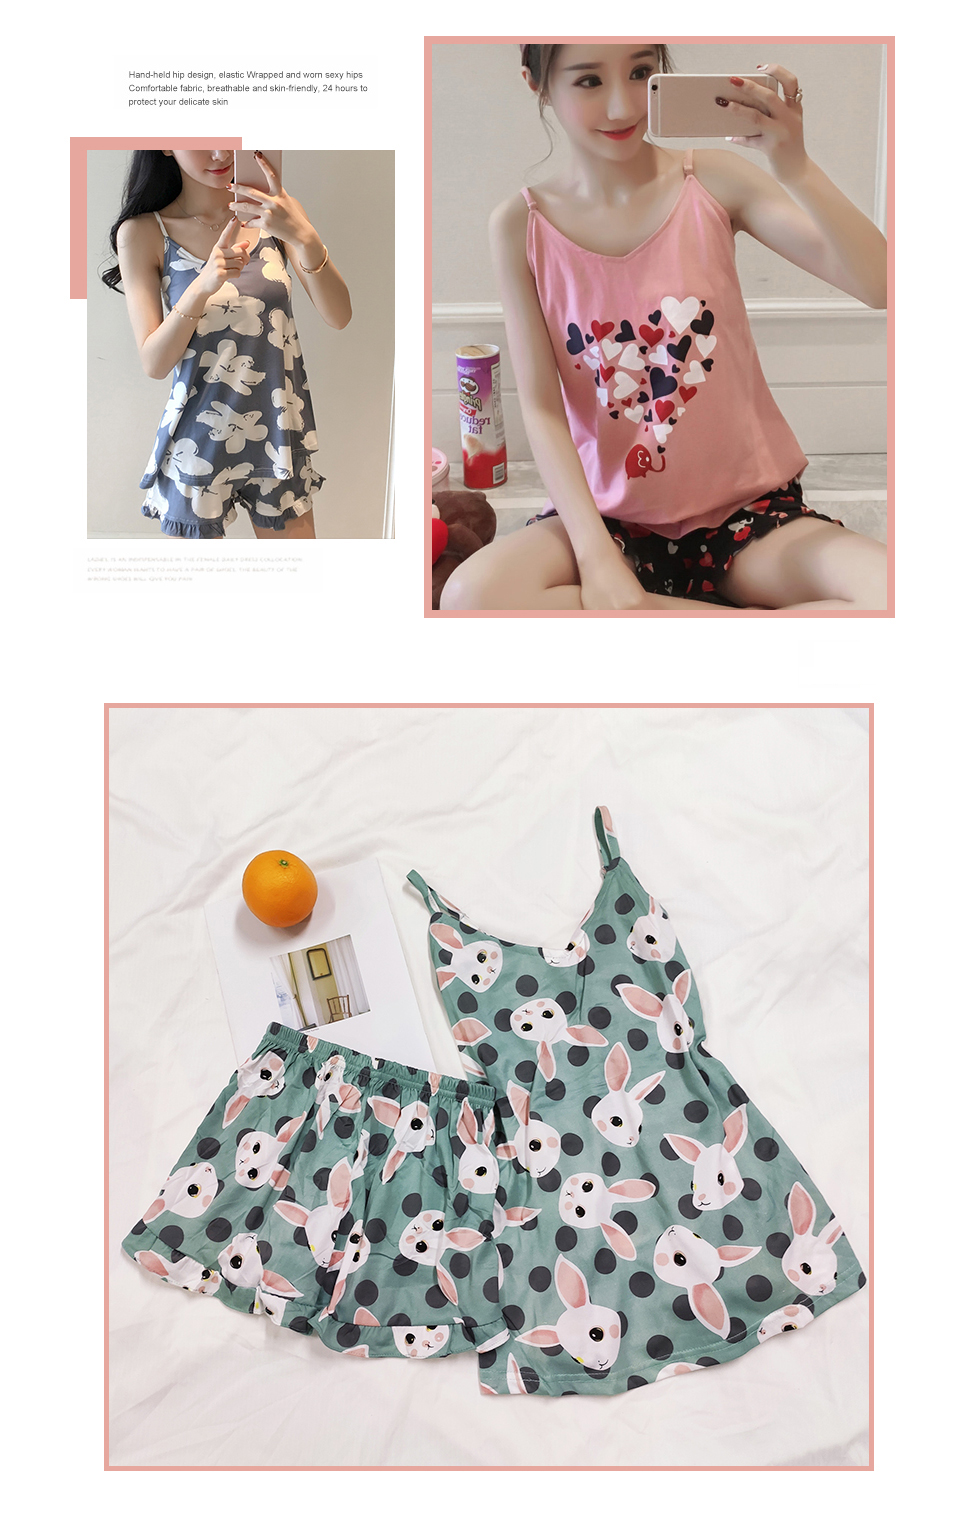 FallSweet Summer  Print Pajama Sets for Women Cotton  Sleepwear  Girls Sleeveless Sexy Lingerie Two Piece Set